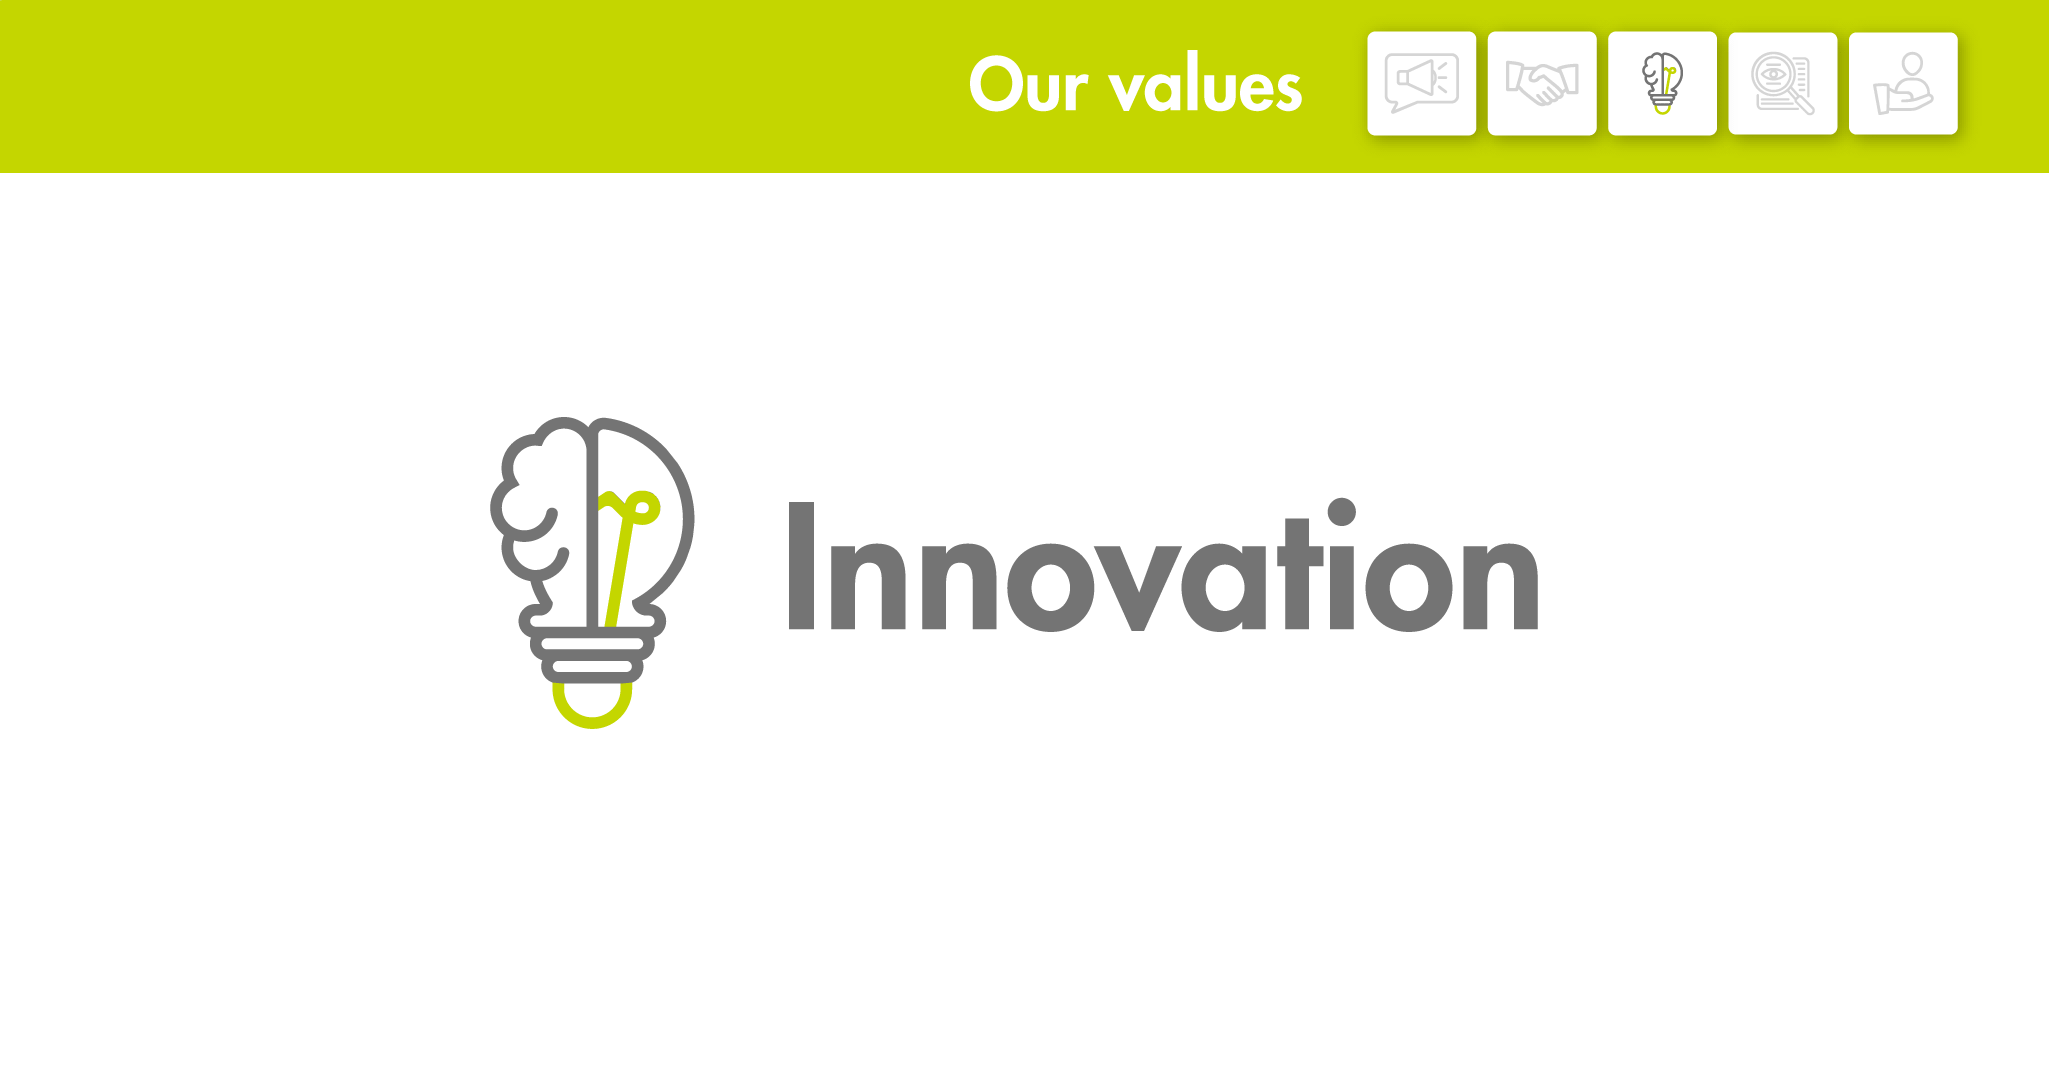 Our values: Innovation